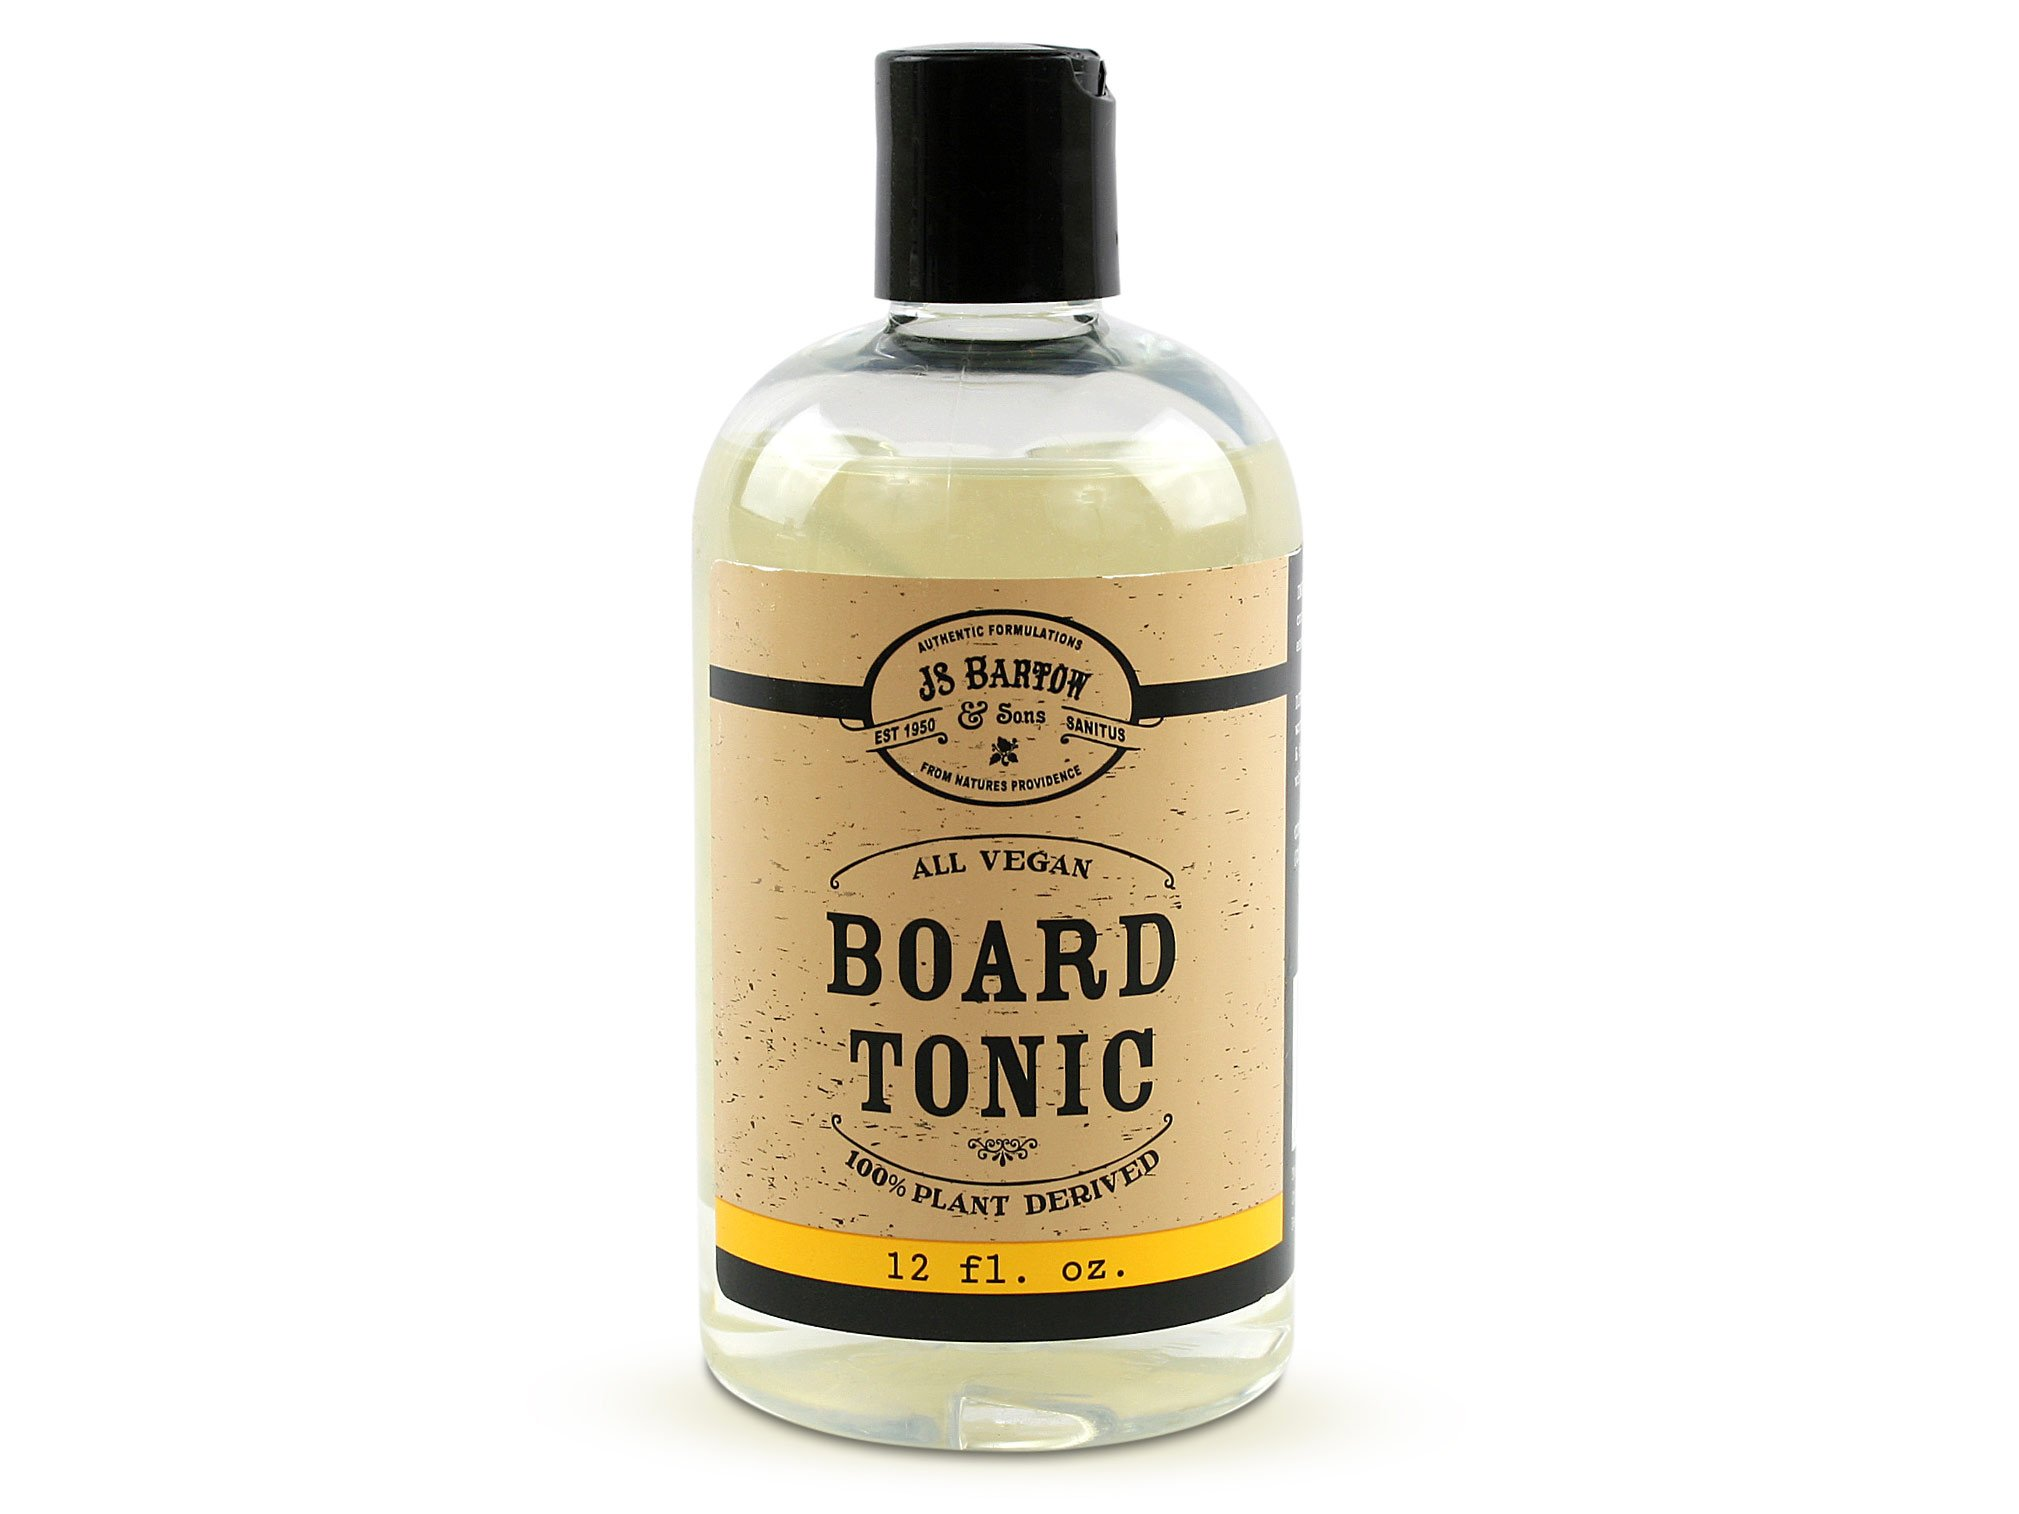 Bartow and Sons Vegan Cutting Board Oil, Natural, Edible, Food Safe Tonic Restores Bamboo & Wood